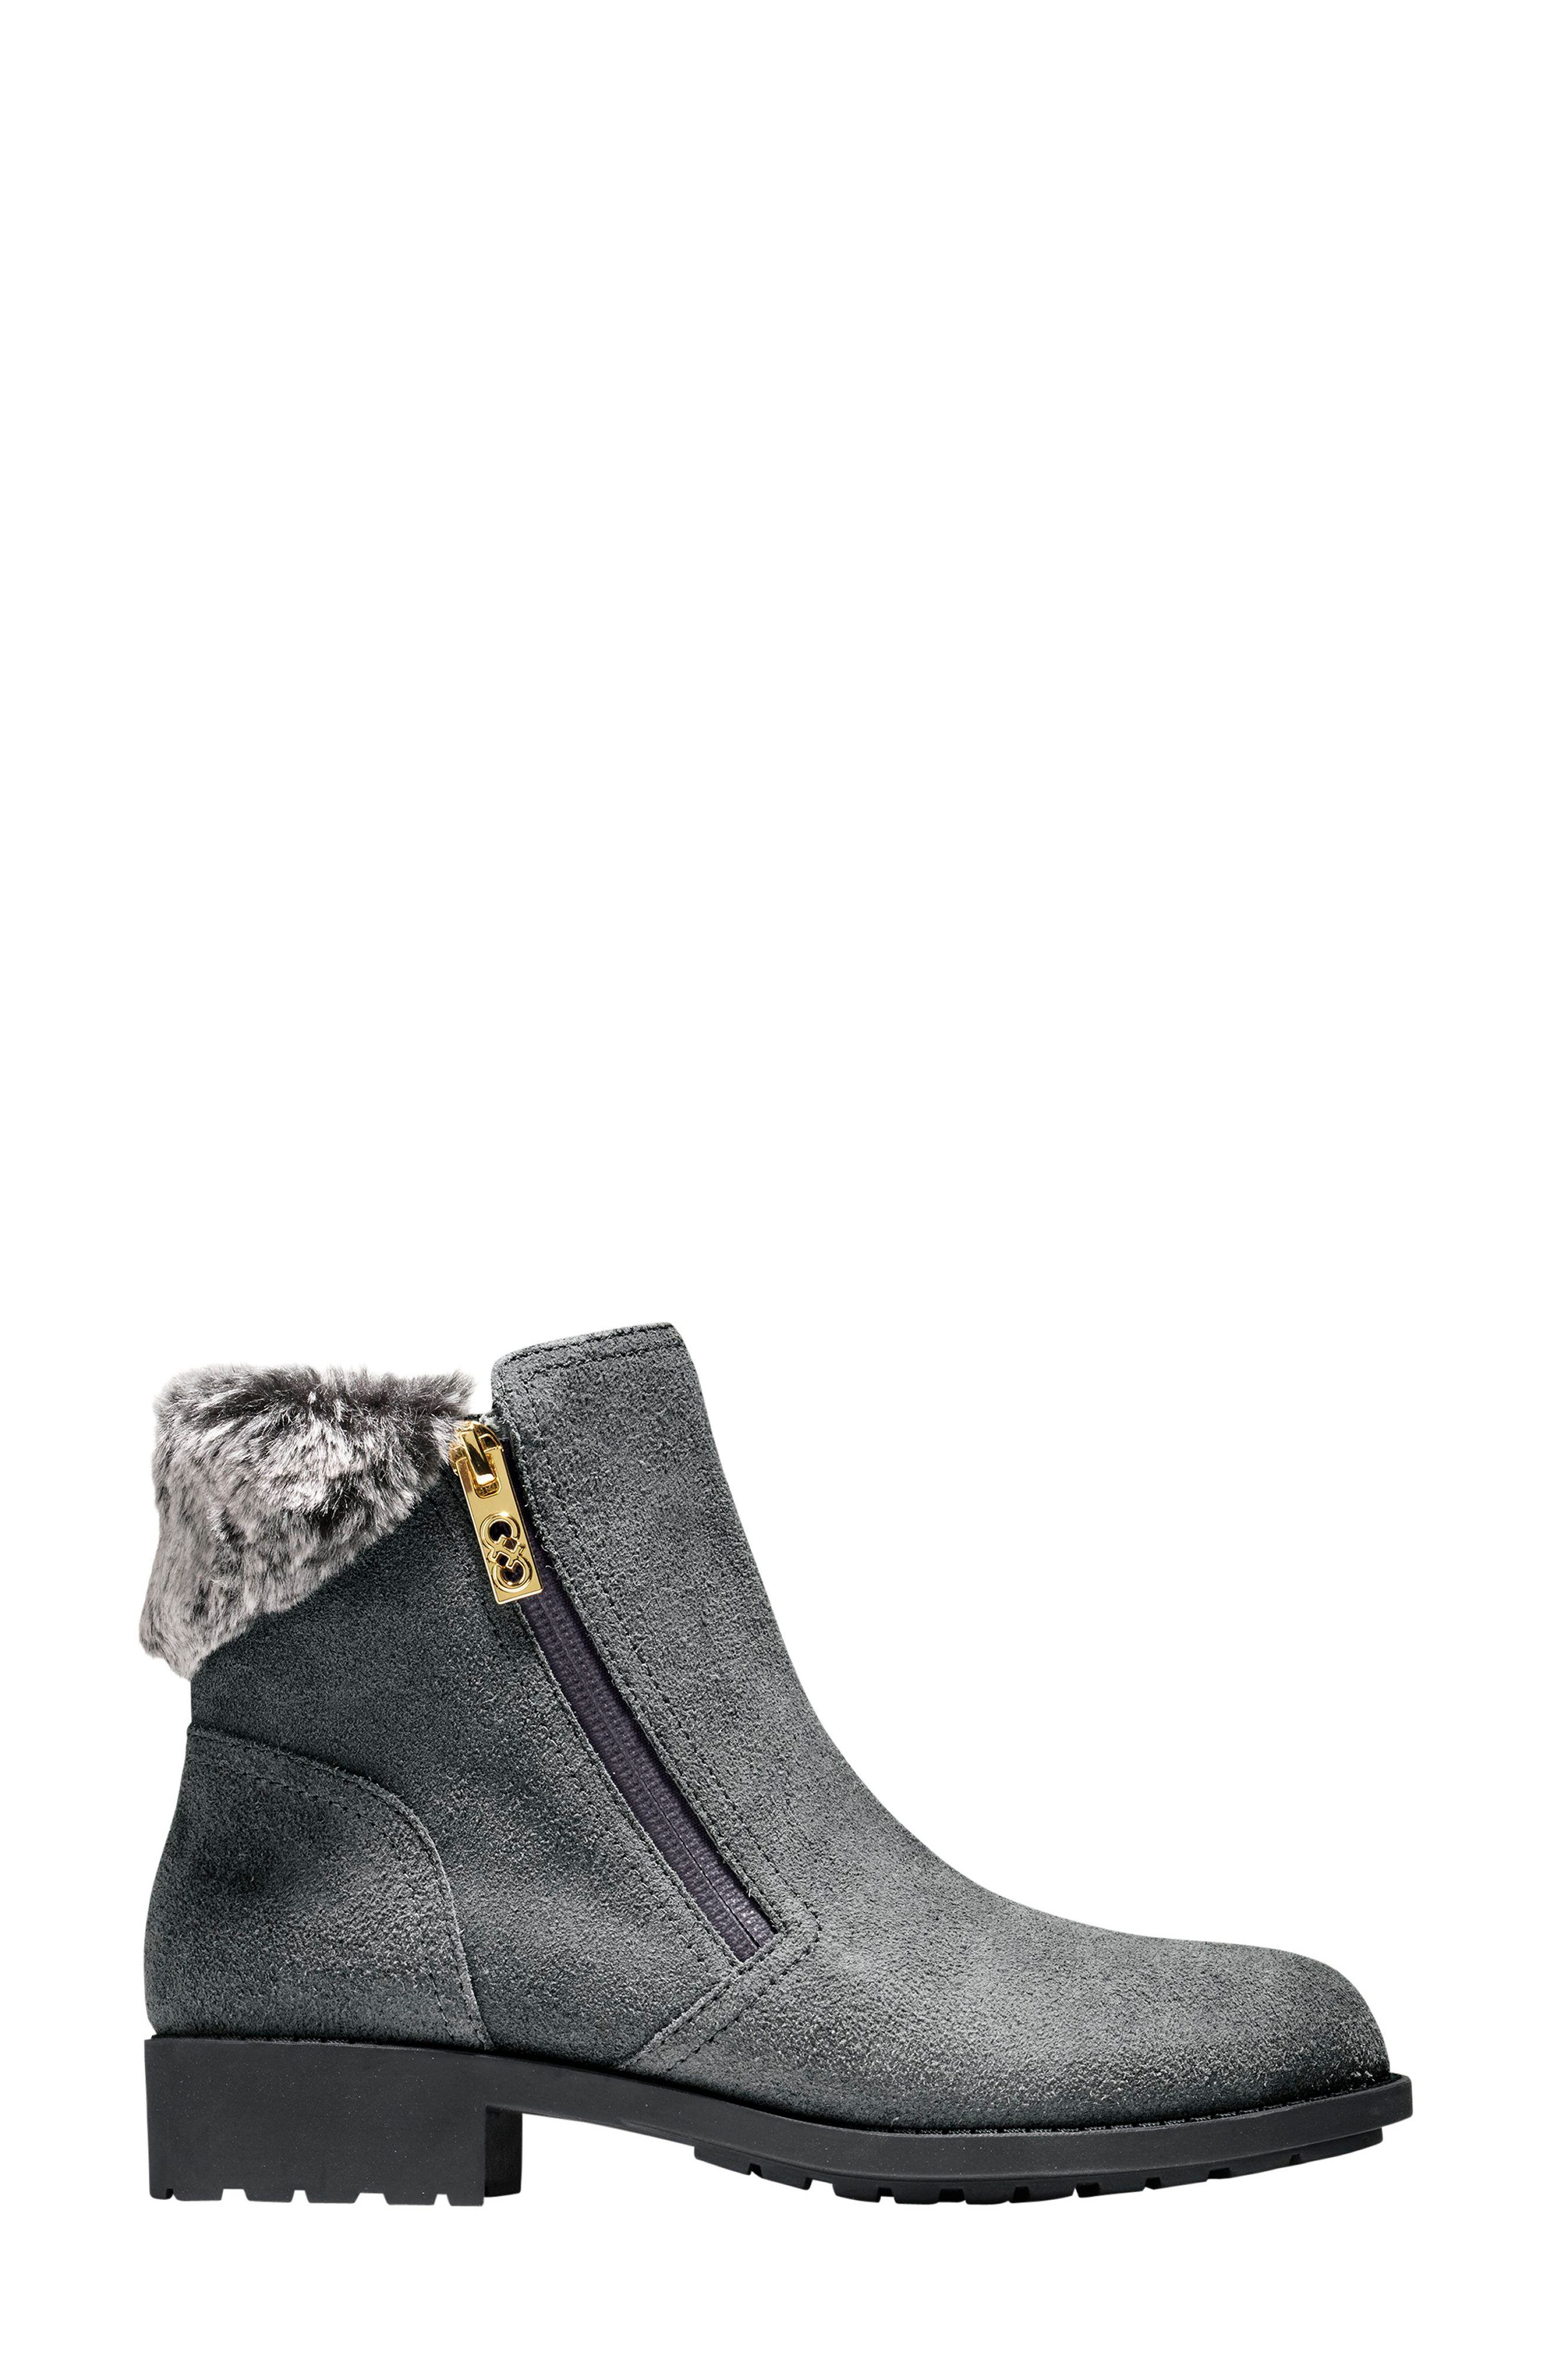 Quinney Waterproof Bootie with Faux Shearling Trim,                             Alternate thumbnail 3, color,                             Castlerock Waterproof Suede